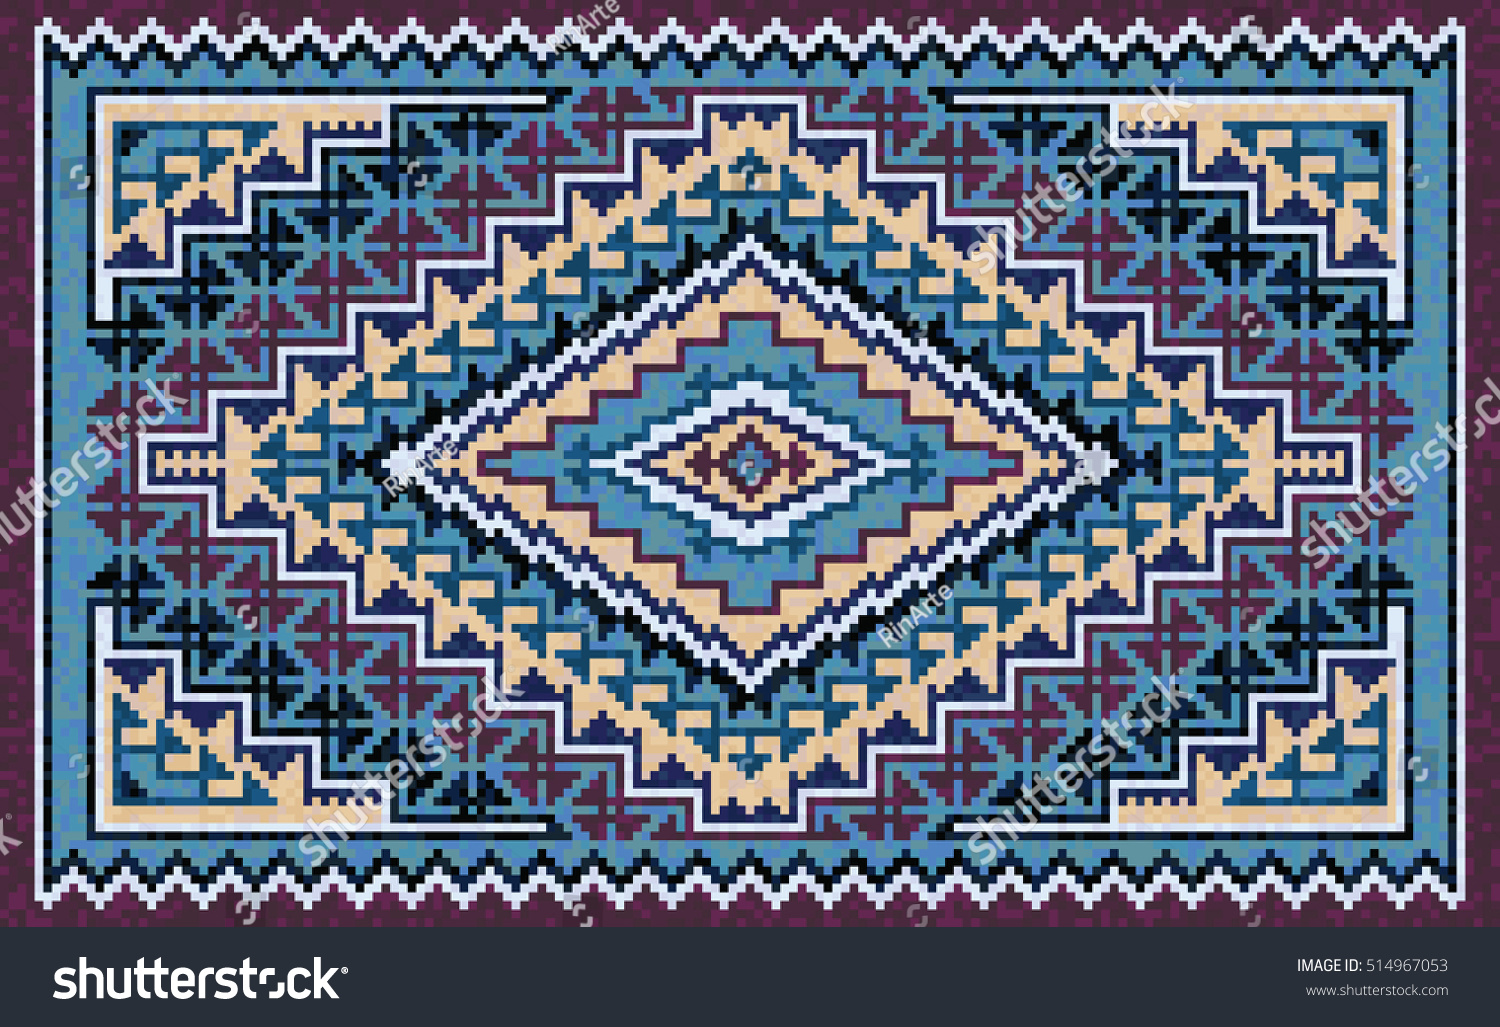 navajo rug patterns. Colorful Mosaic Navajo Rug With Traditional Folk Geometric Pattern. Native American Indian Blanket Patterns